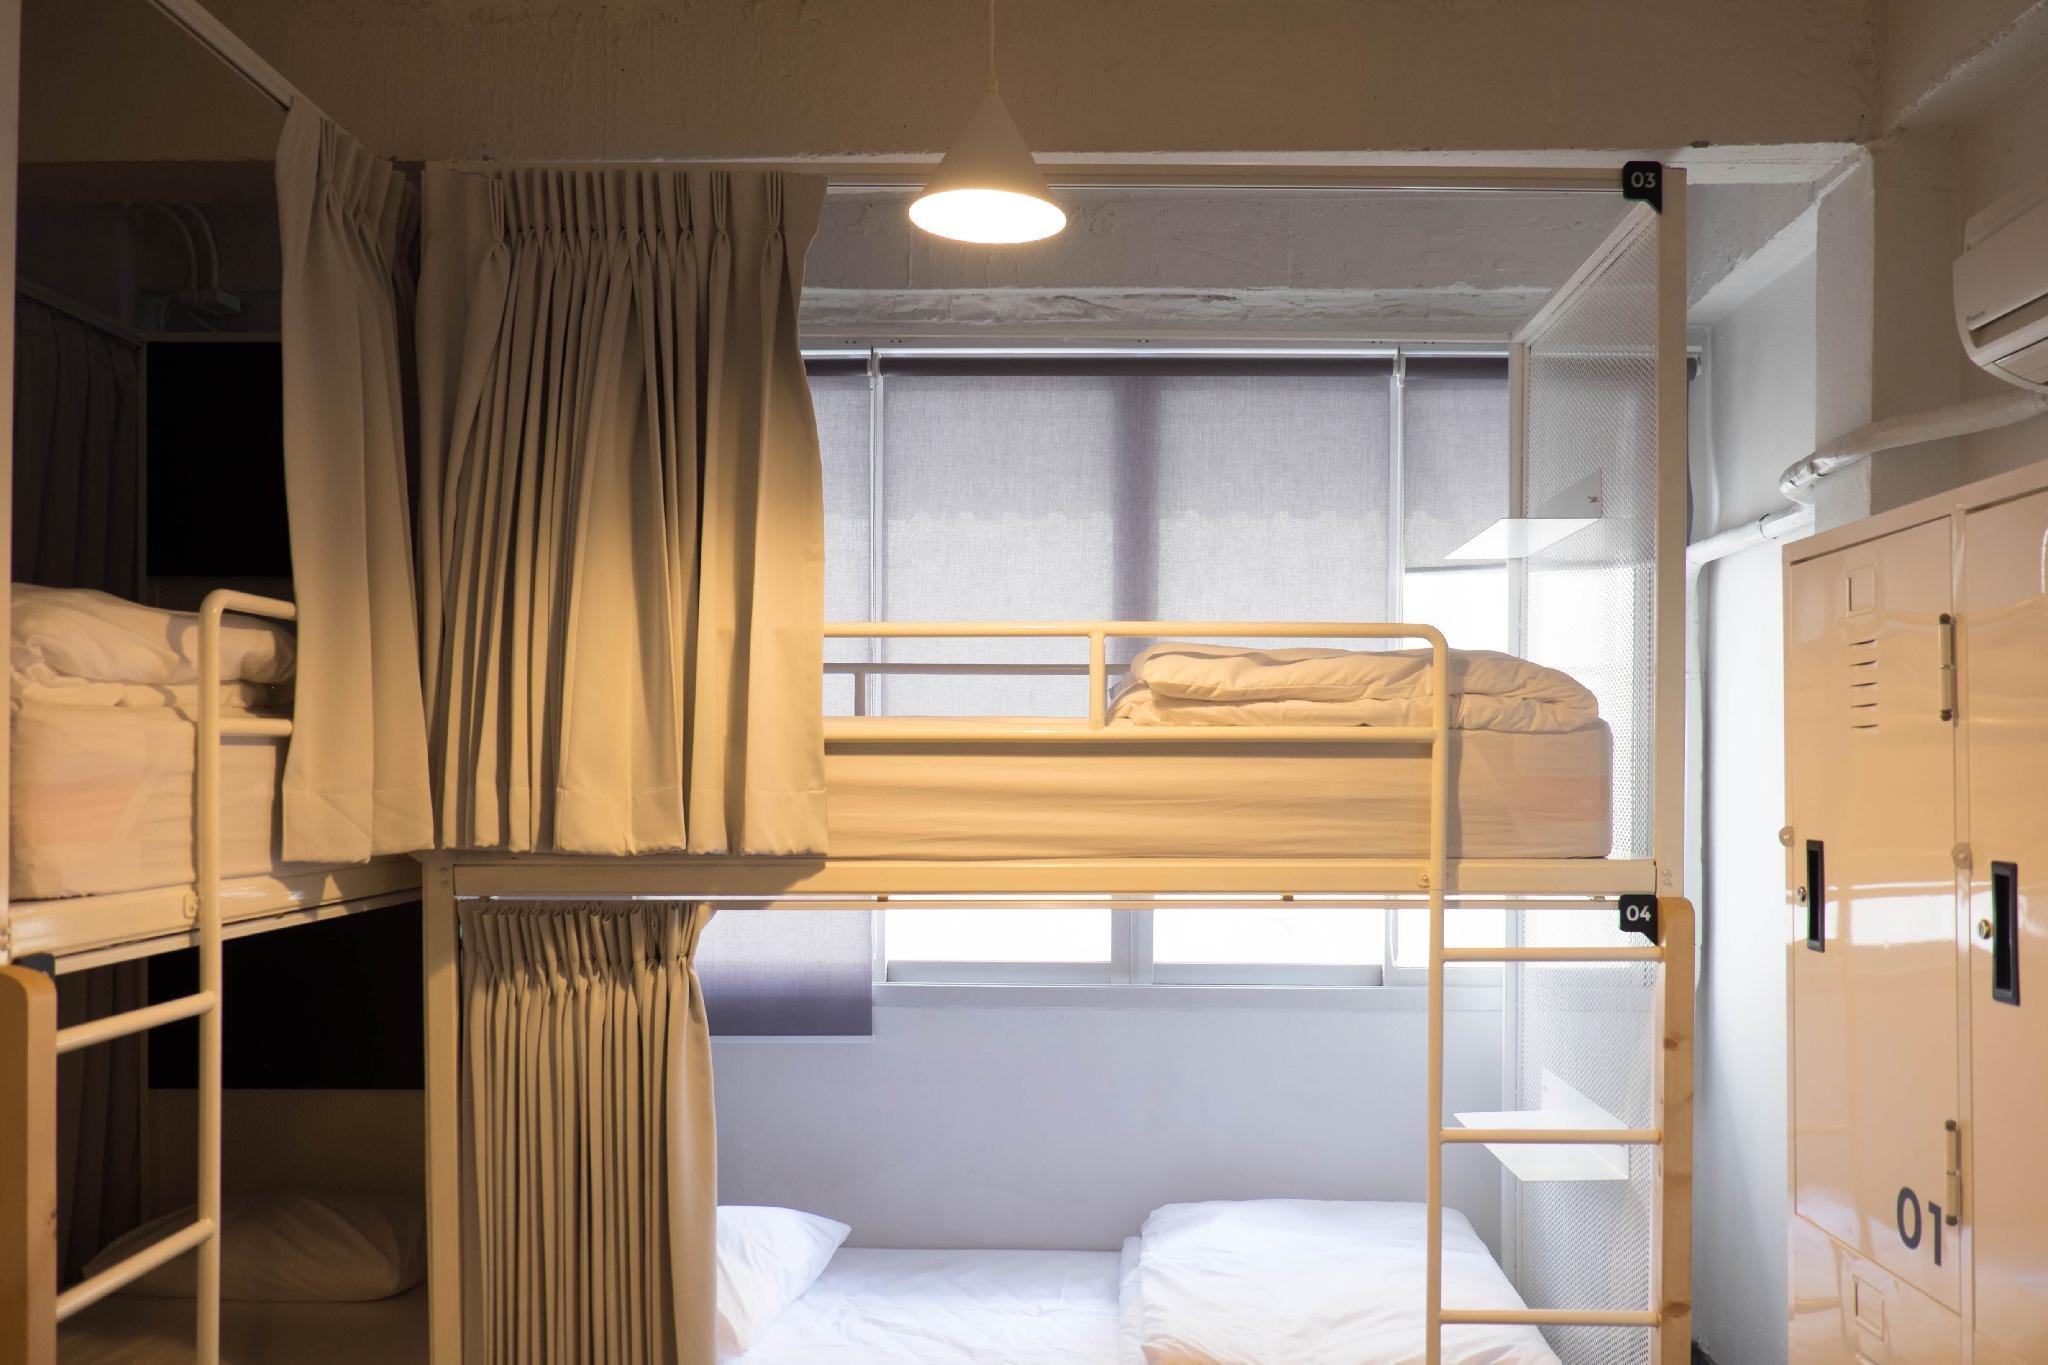 Køjeseng på blandet sovesal med 4 senge (Bunk Bed in 4-Bed Mixed Dormitory Room)